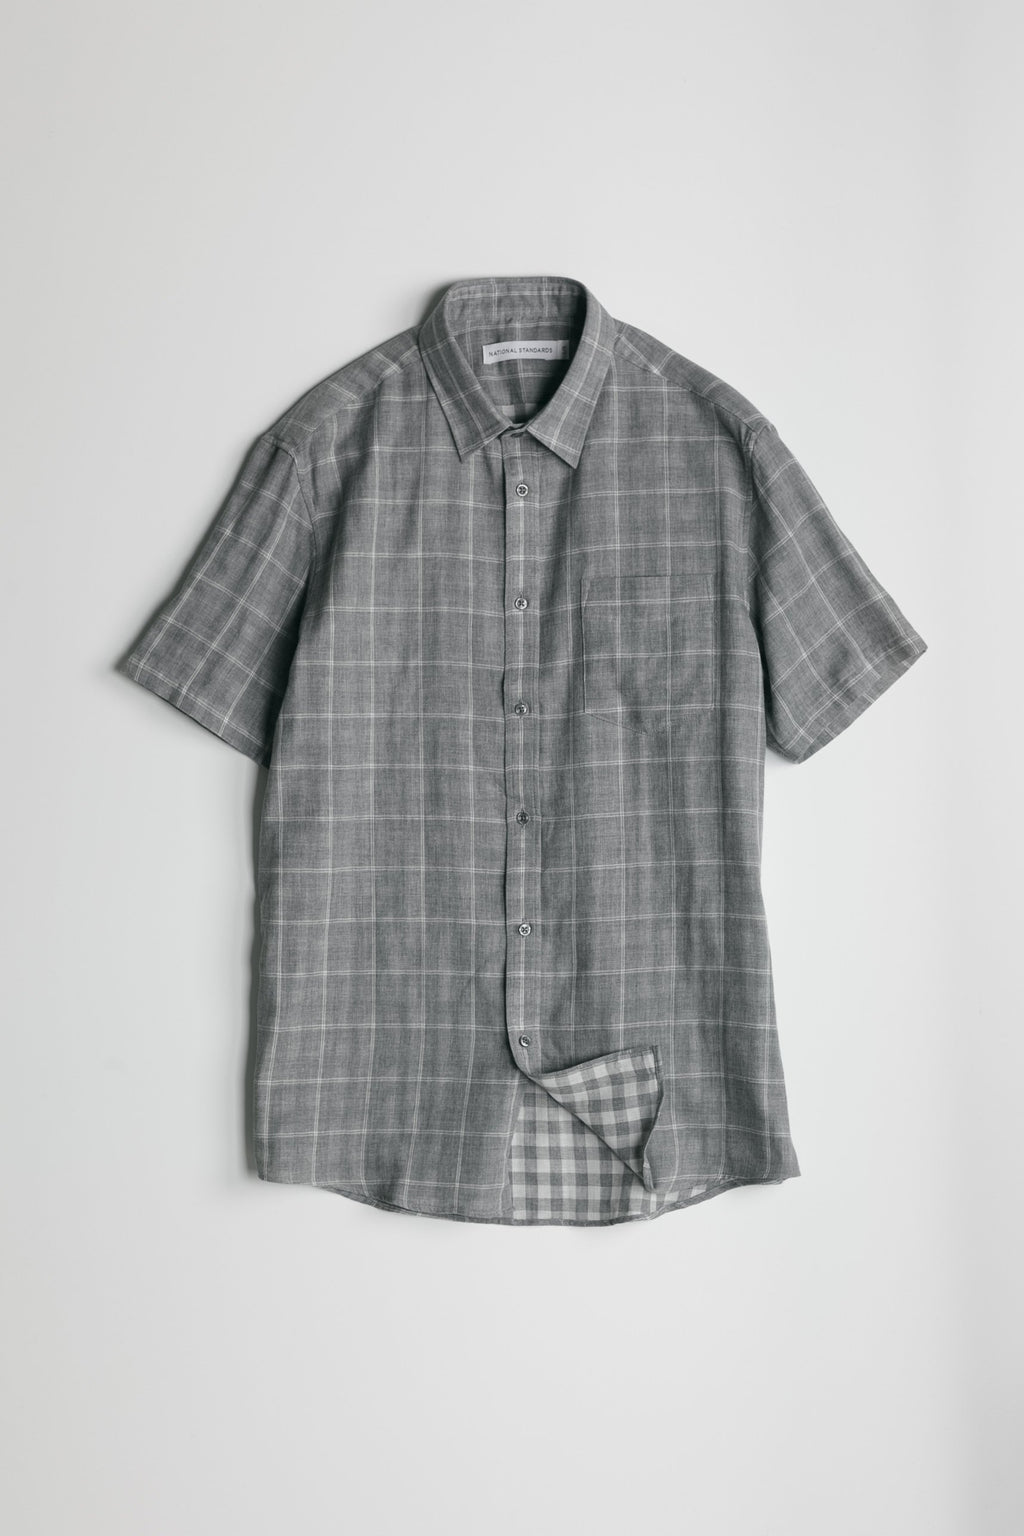 japanese-double-face-plaid-in-grey 01